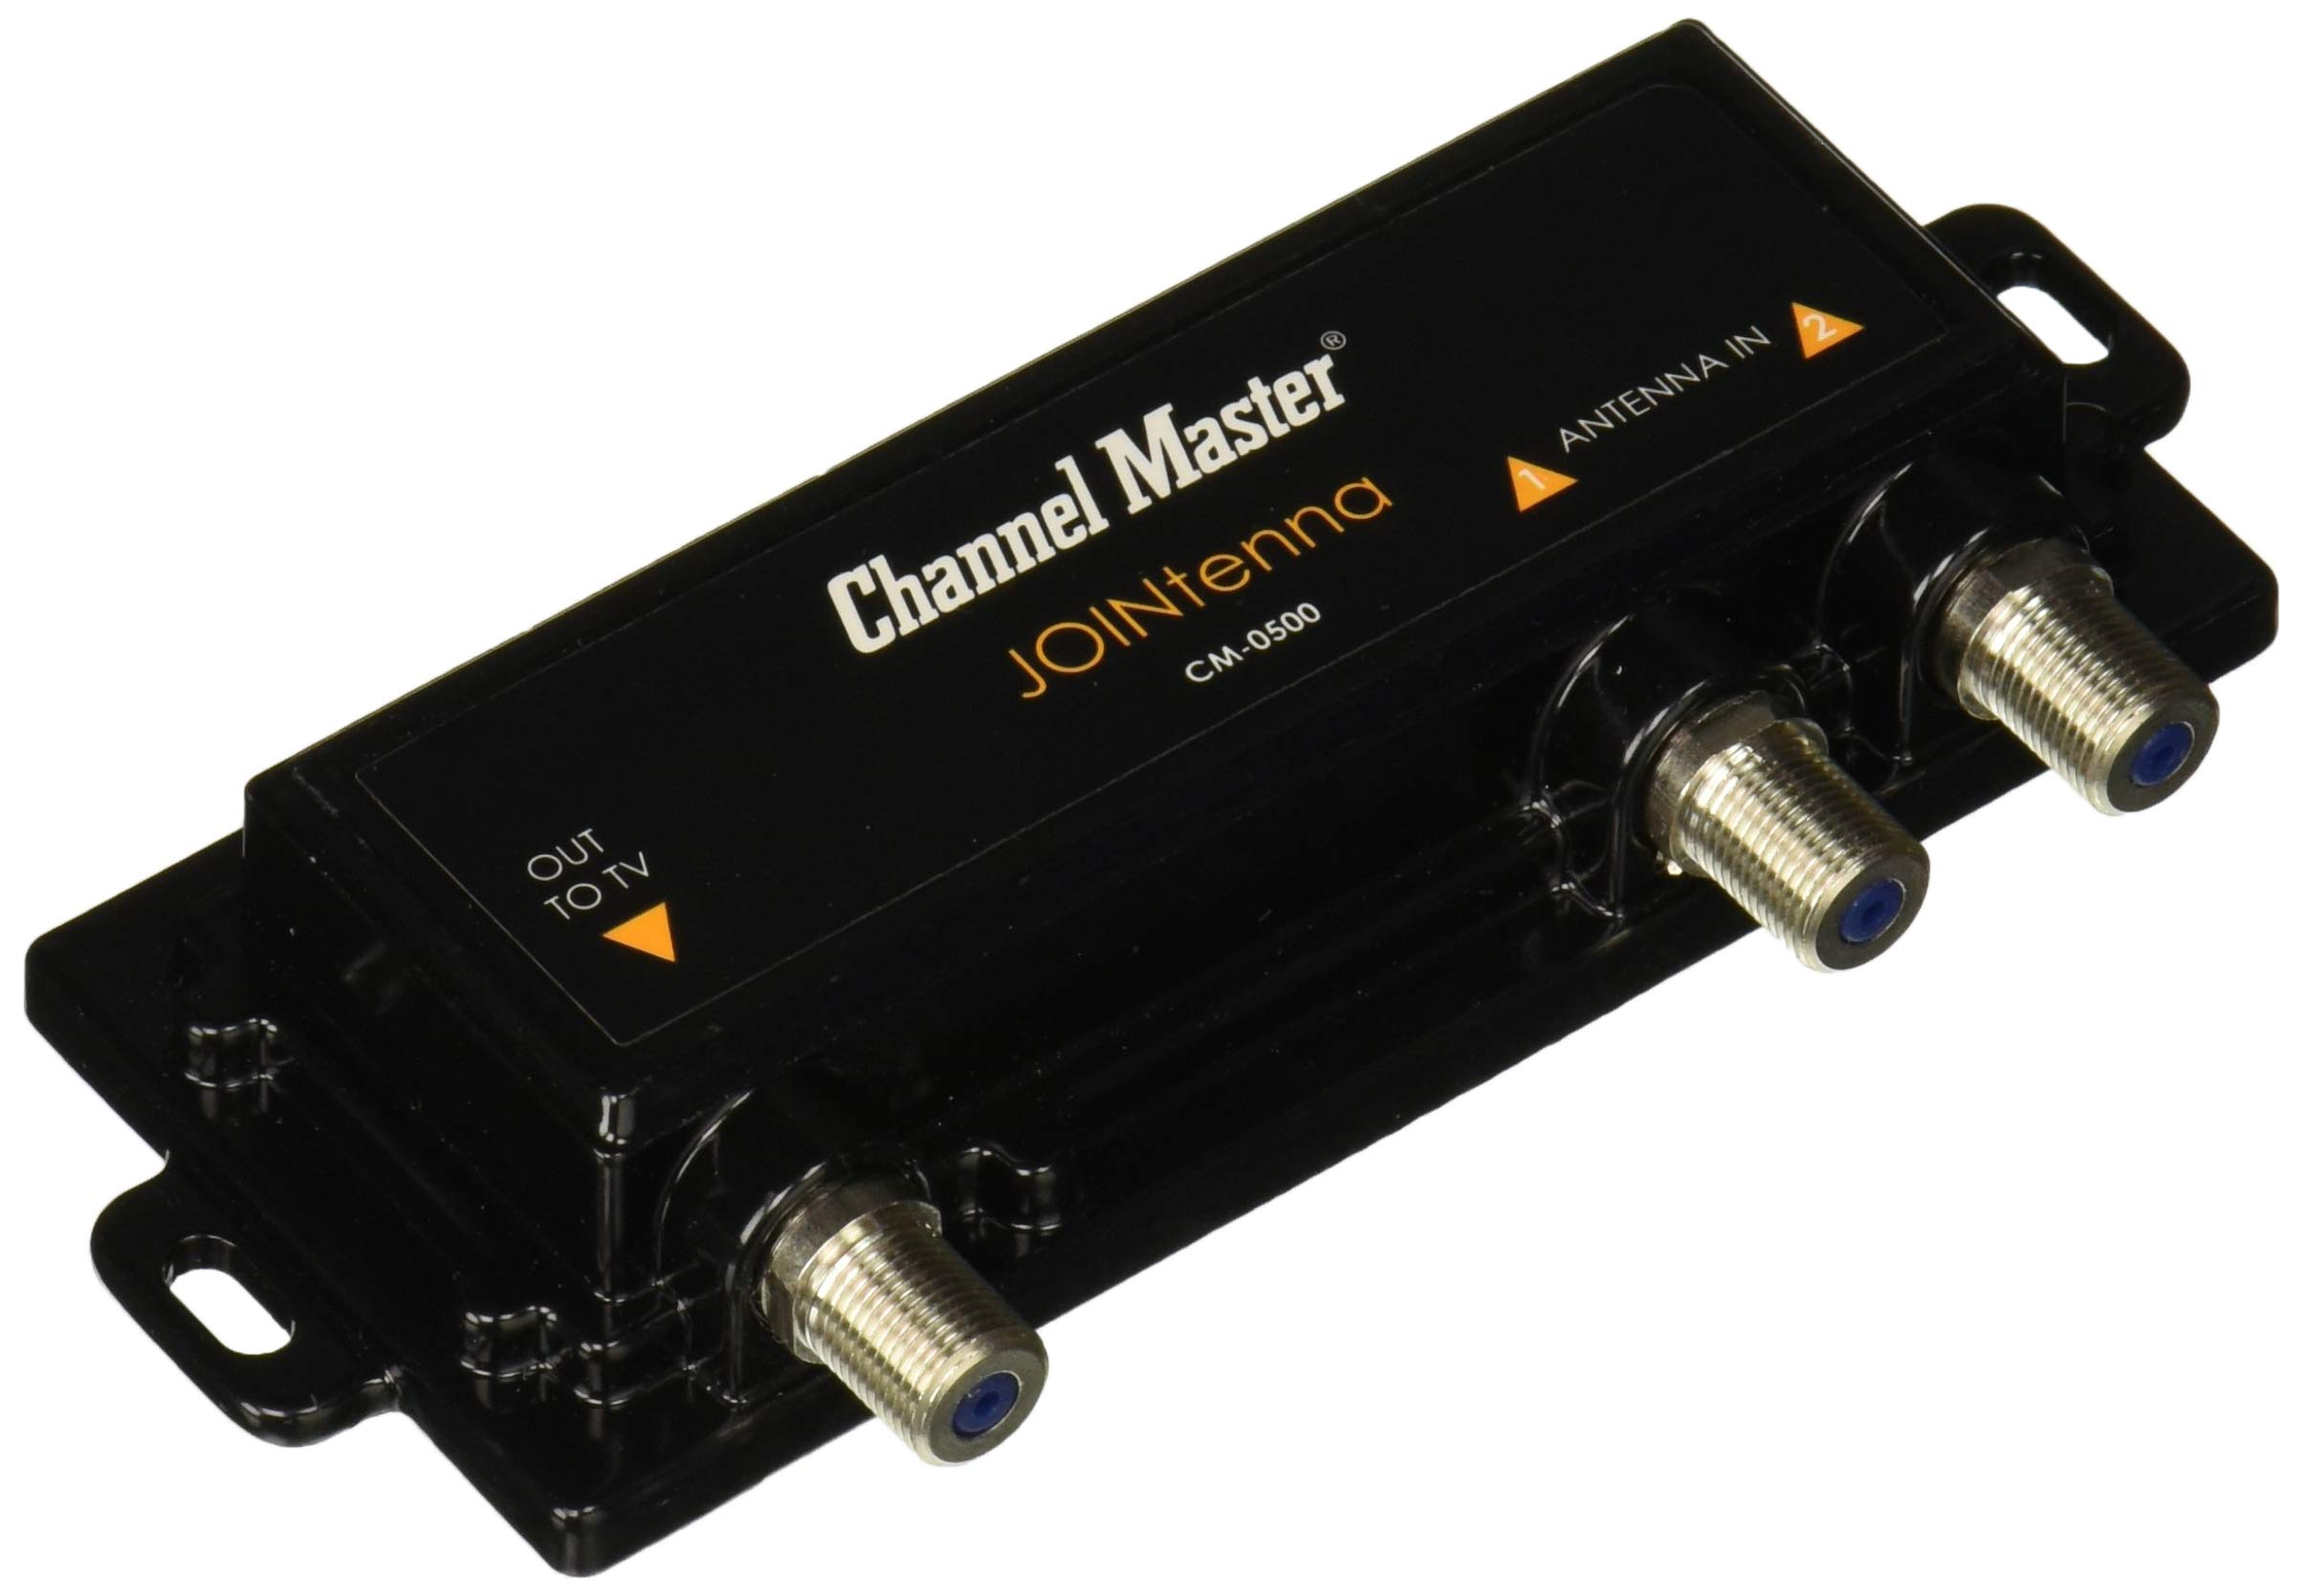 Channel Master CM-0500 JOINtenna TV Antenna Combiner by Channel Master